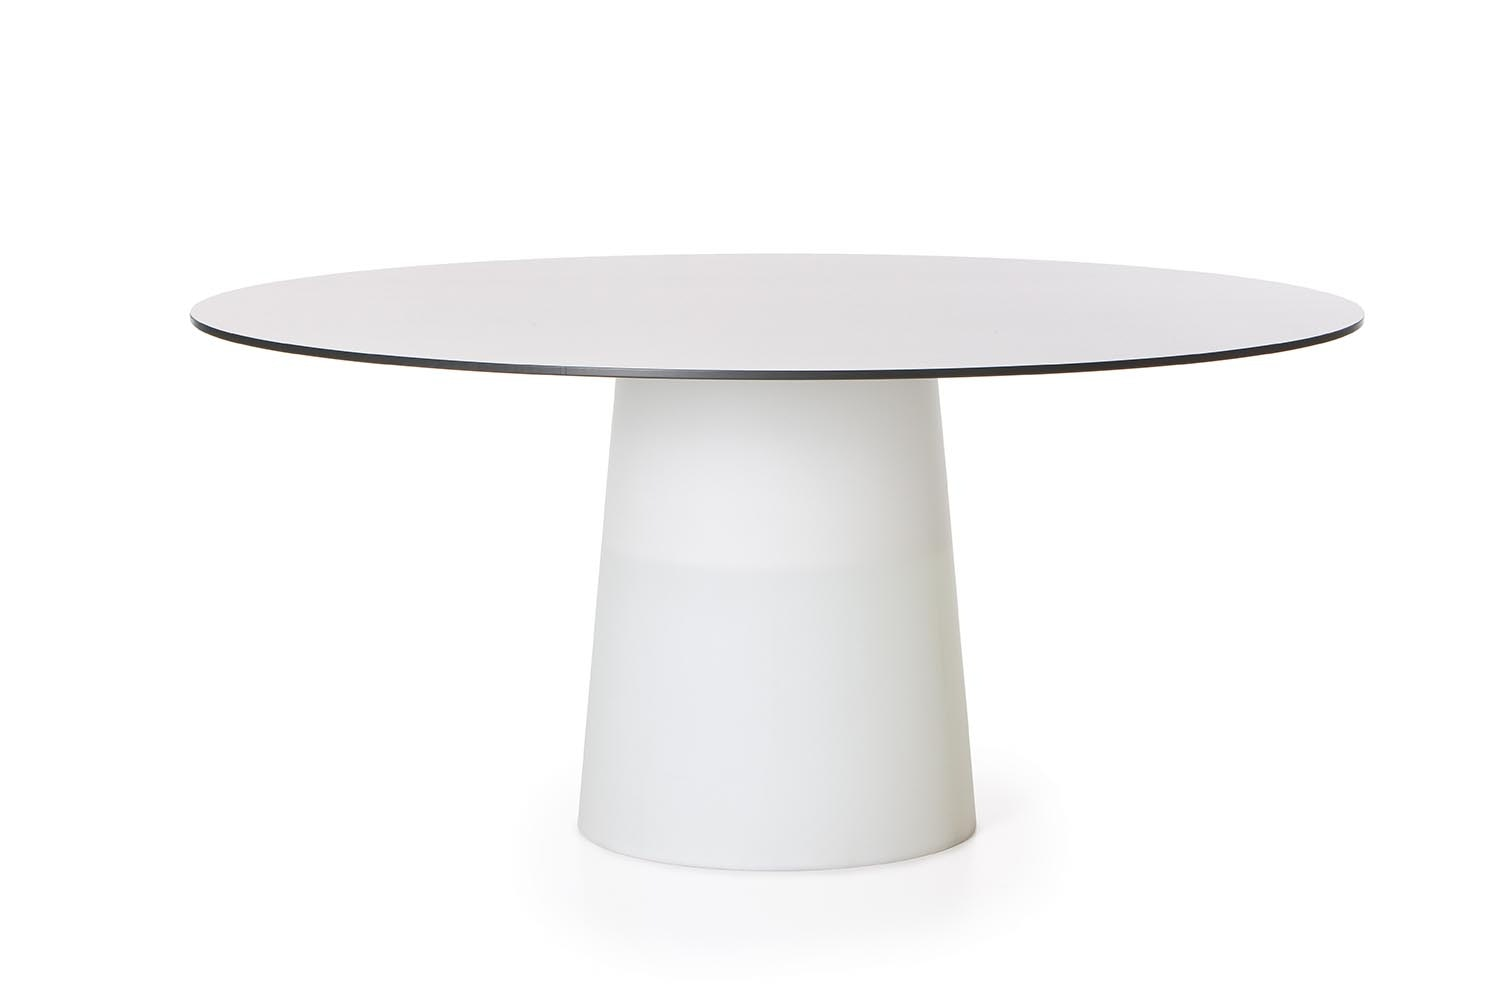 Container Table HPL Round 180cm by Marcel Wanders for Moooi